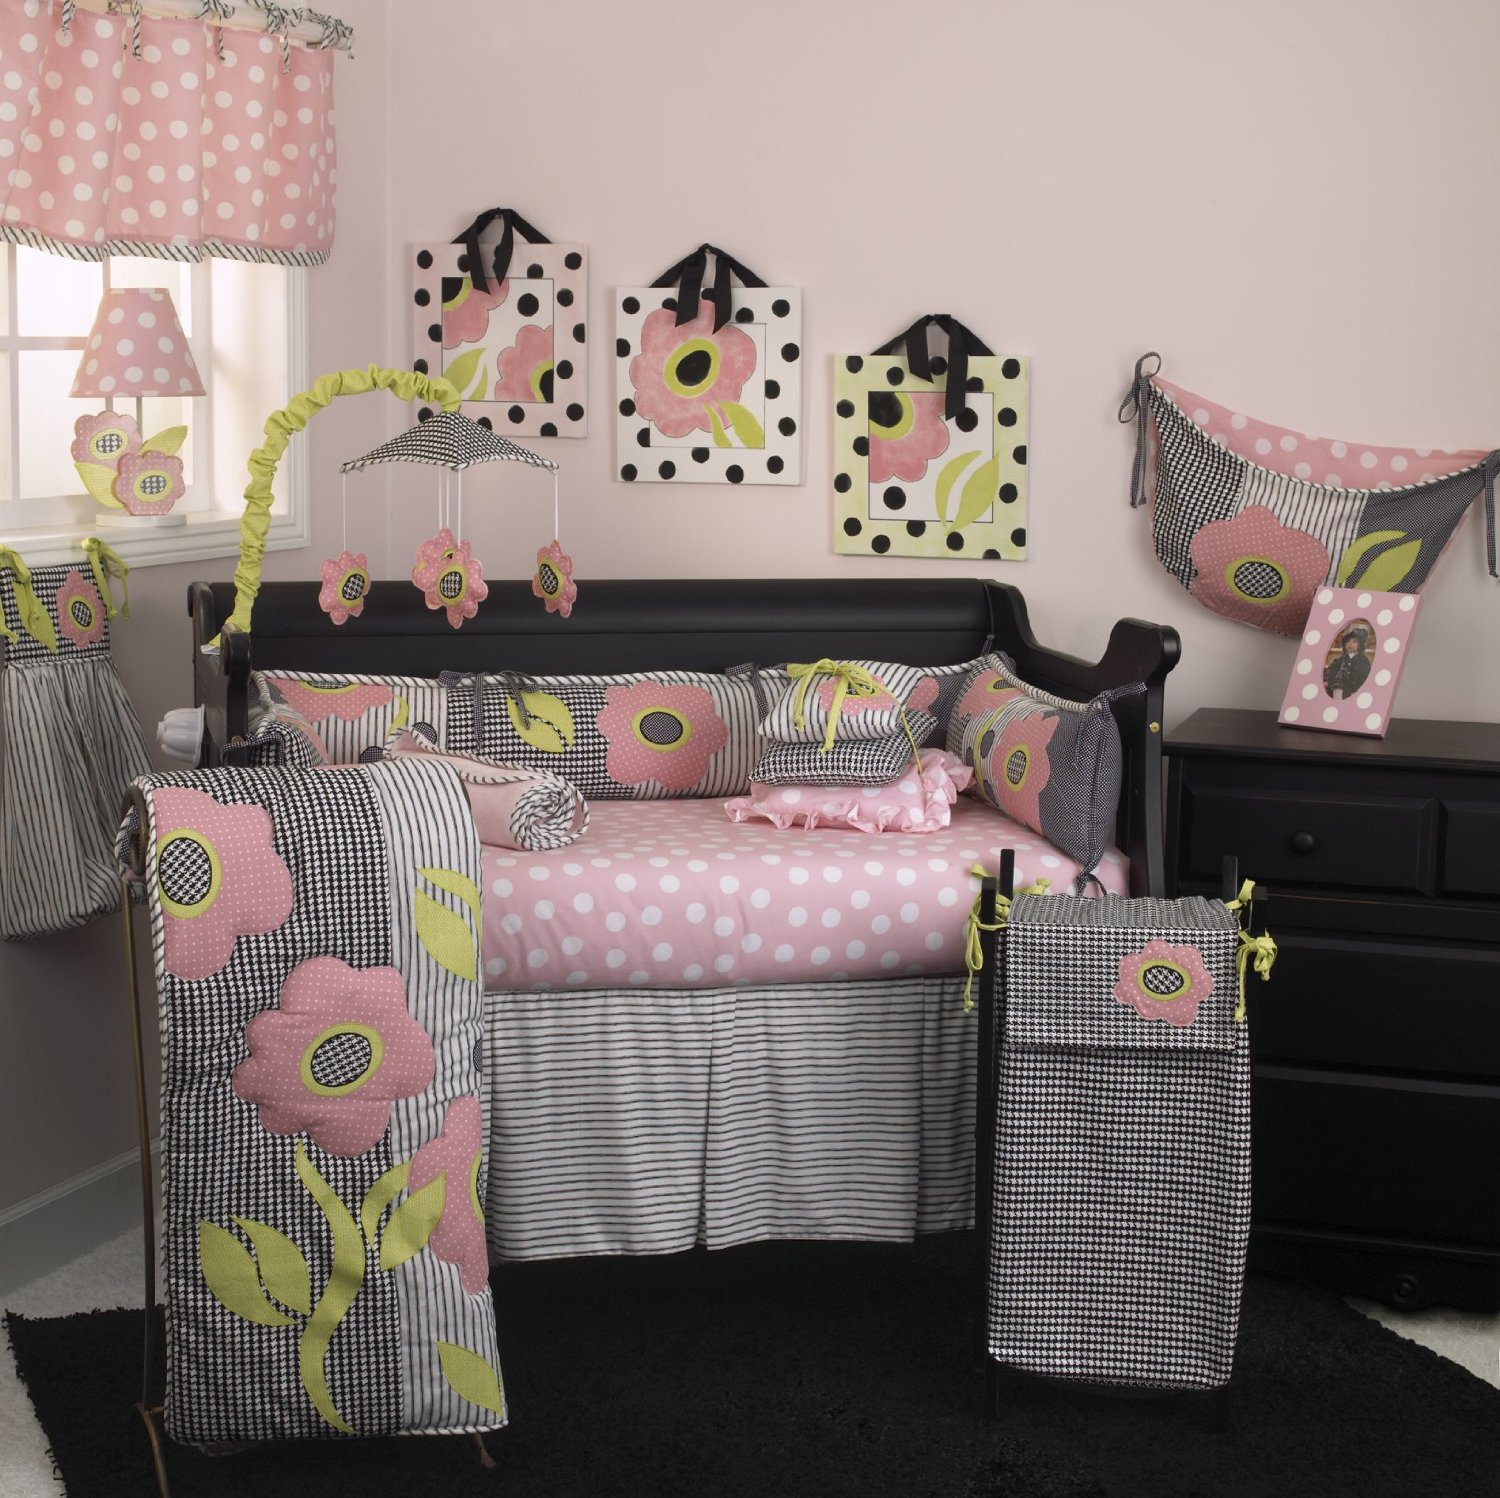 Cotton Tale Poppy Crib Bedding And Decor Baby Bedding And Accessories